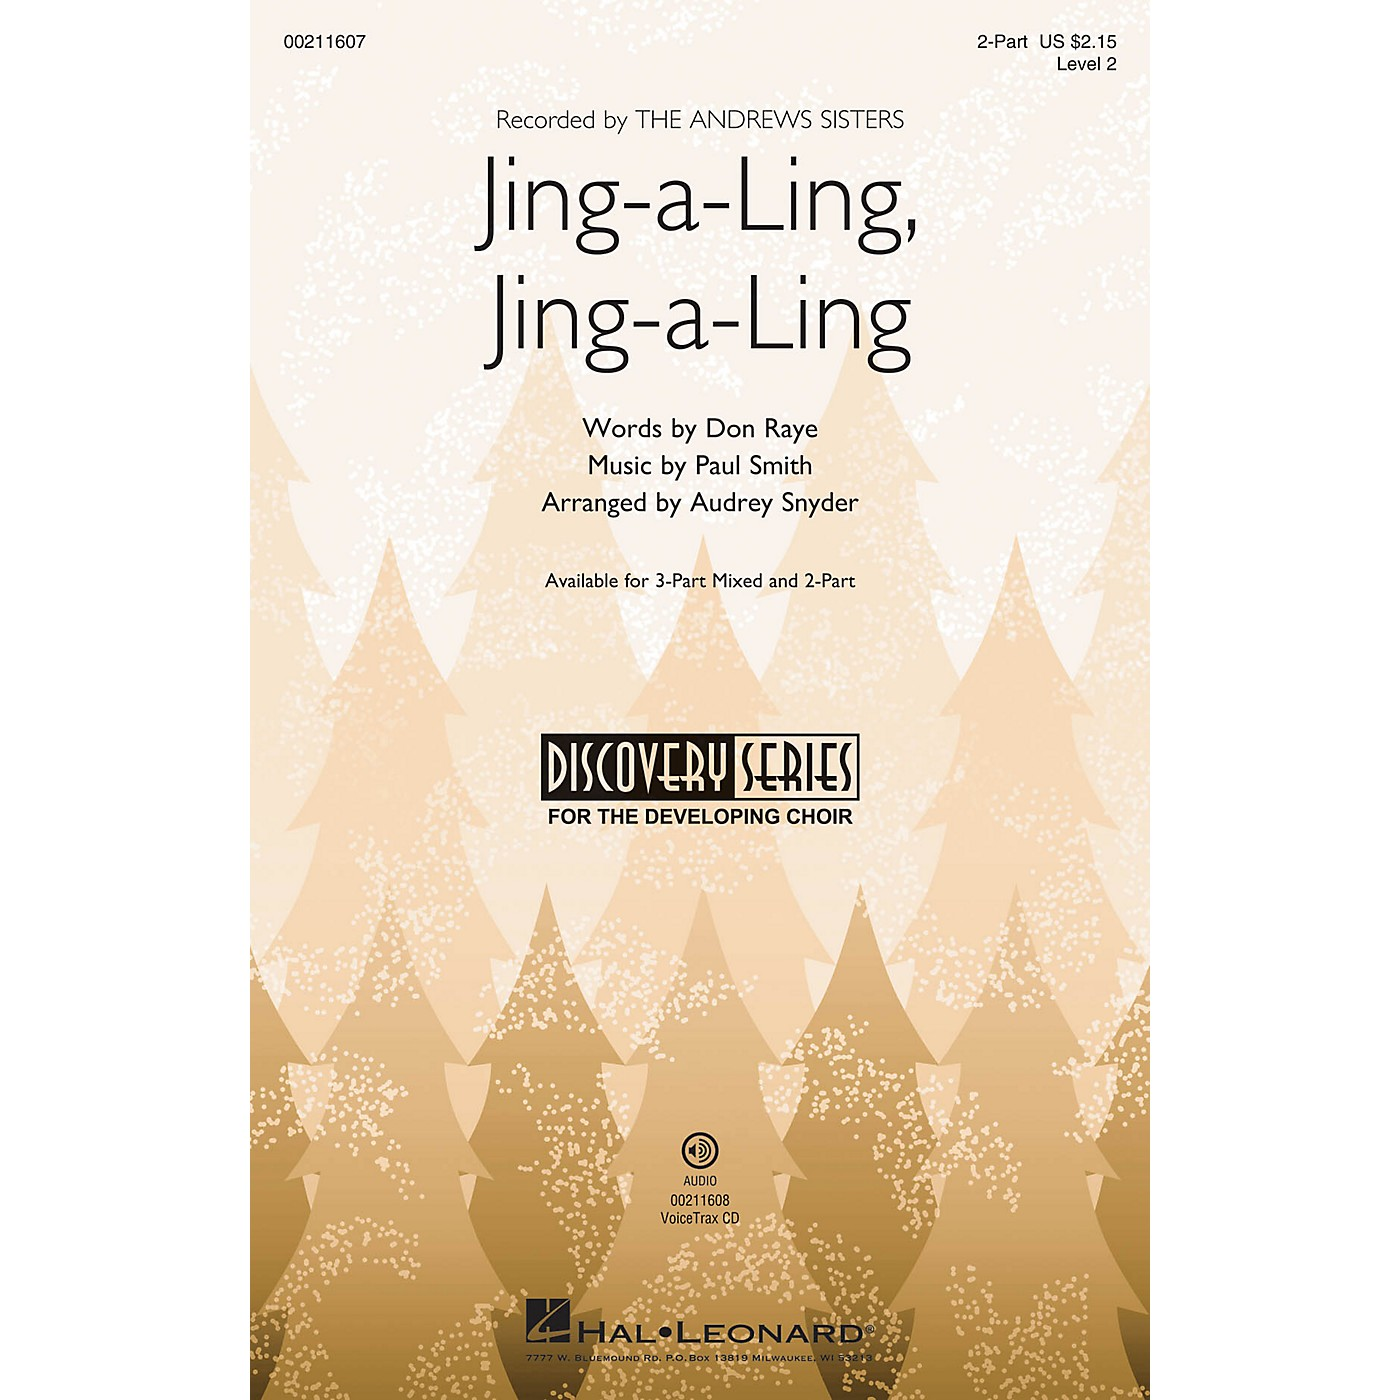 Hal Leonard Jing-a-Ling, Jing-a-Ling (Discovery Level 2) 2-Part arranged by Audrey Snyder thumbnail